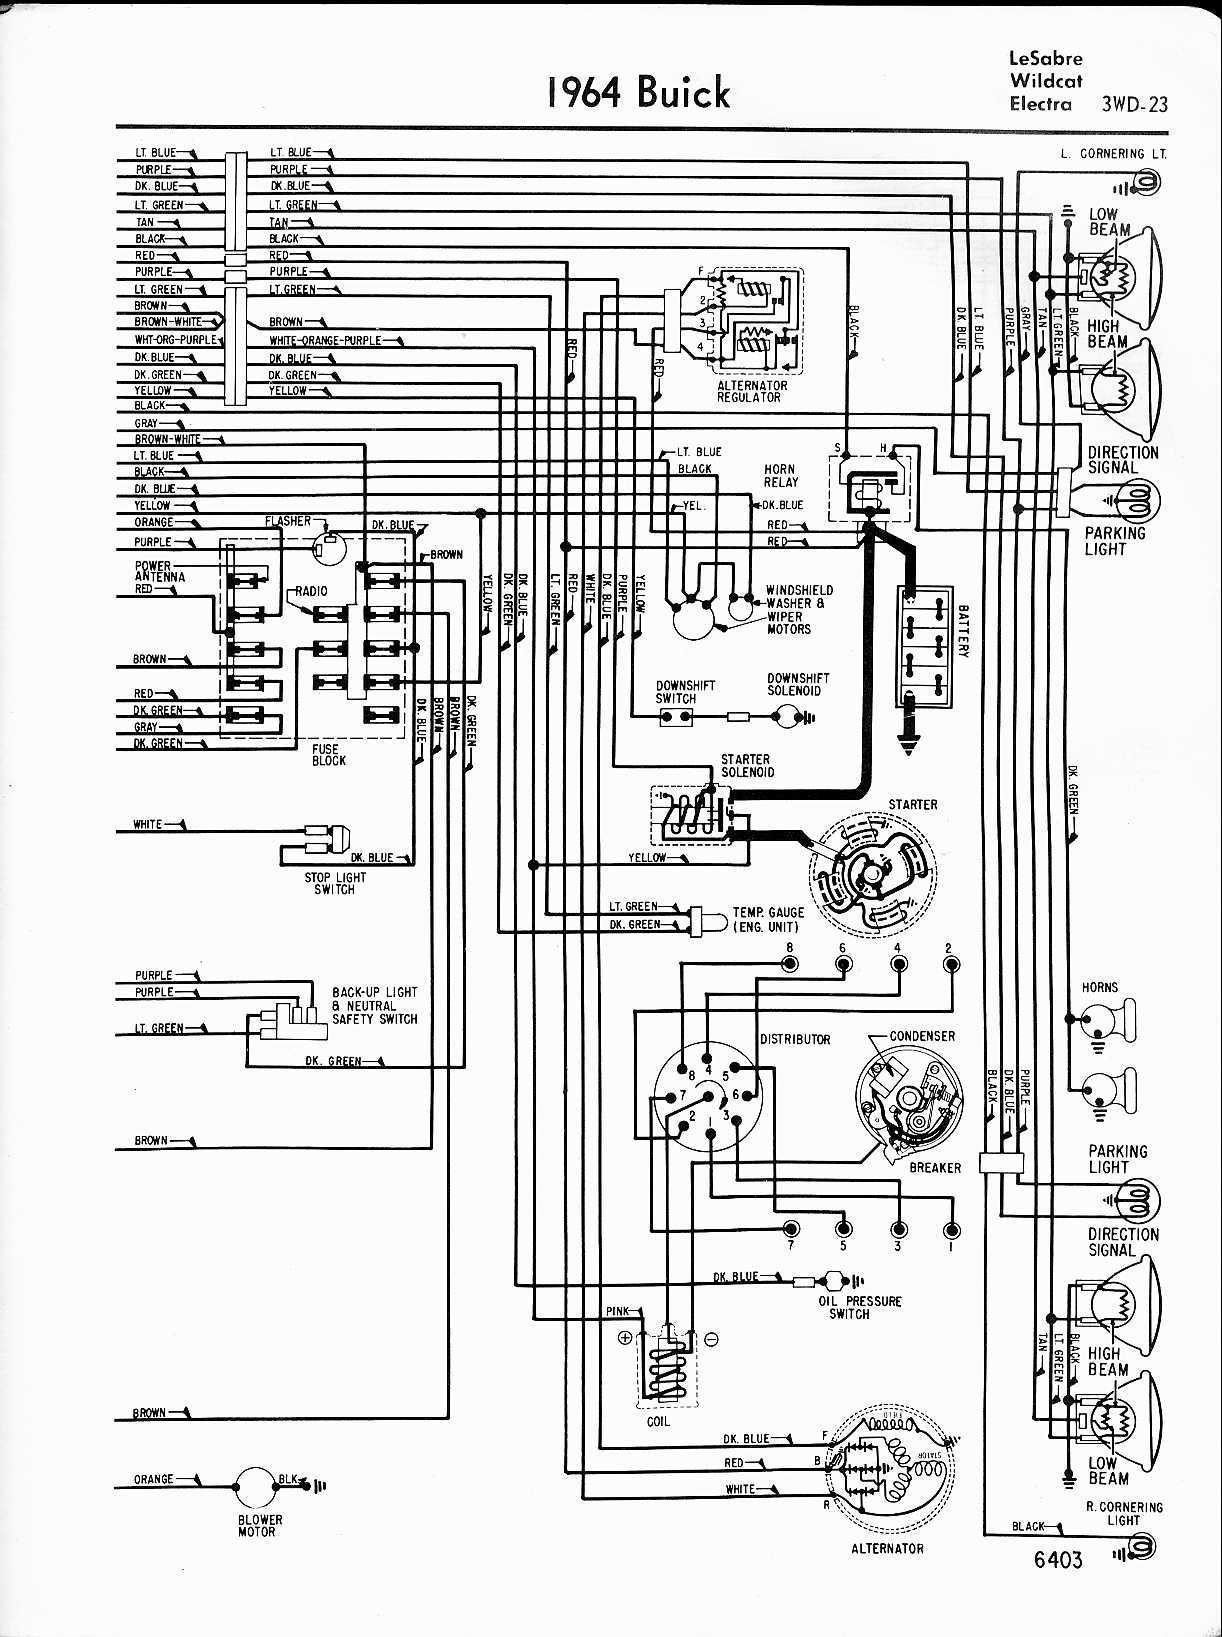 2006 buick rainier engine diagram worksheet and wiring diagram u2022 rh  bookinc co 2006 Buick Rainier